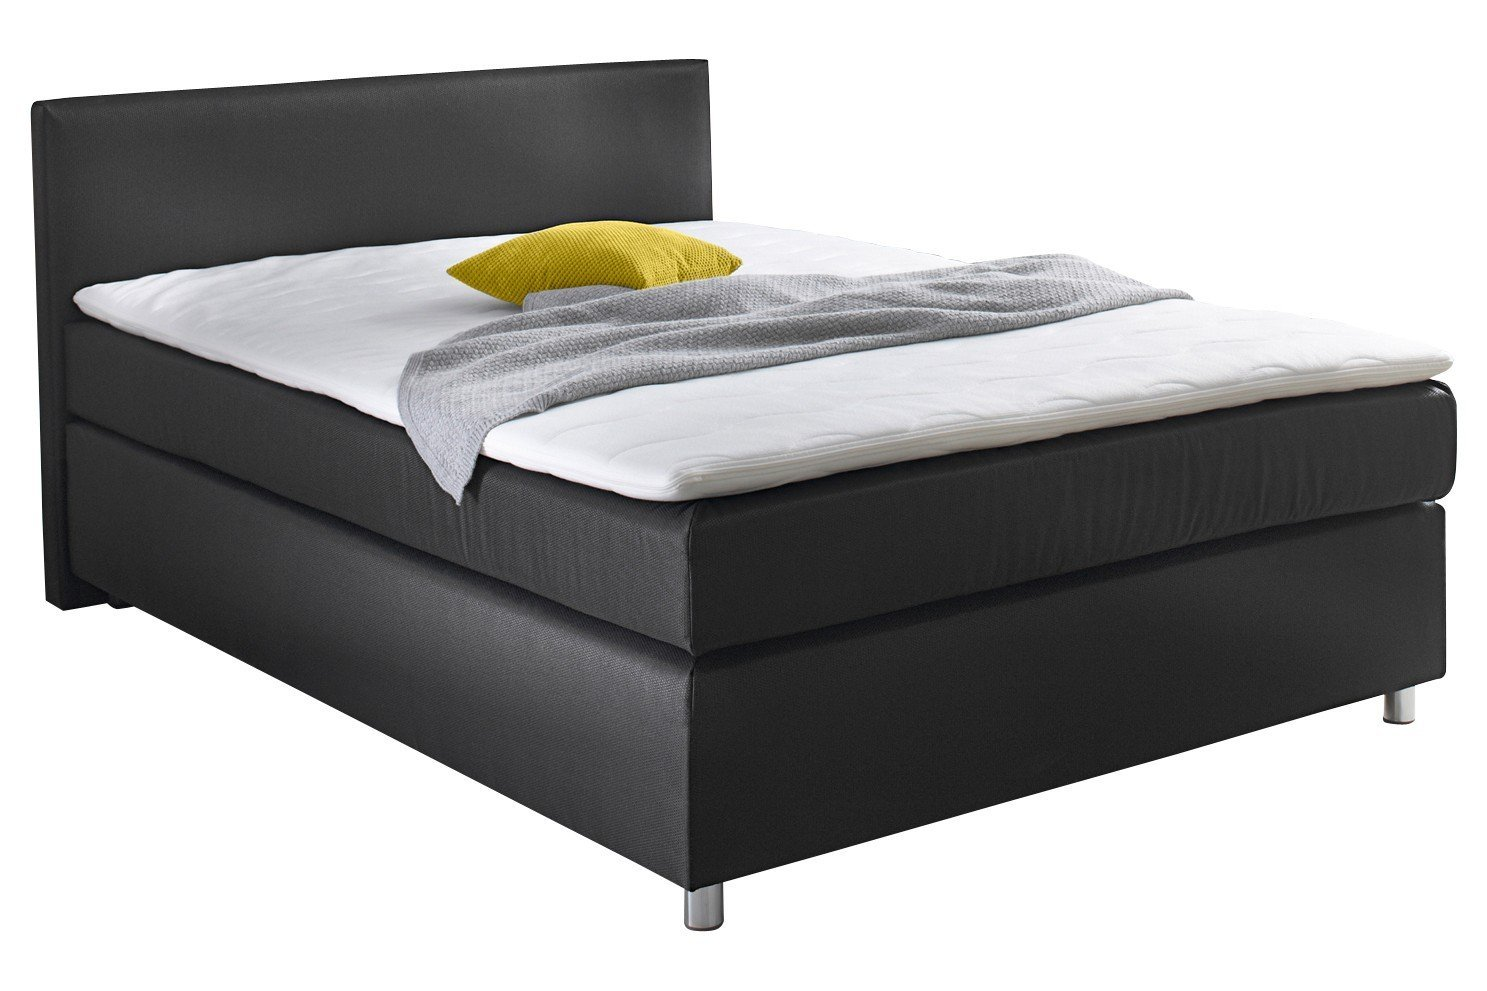 boxspring einzelbett test vergleich top 10 im august 2018. Black Bedroom Furniture Sets. Home Design Ideas